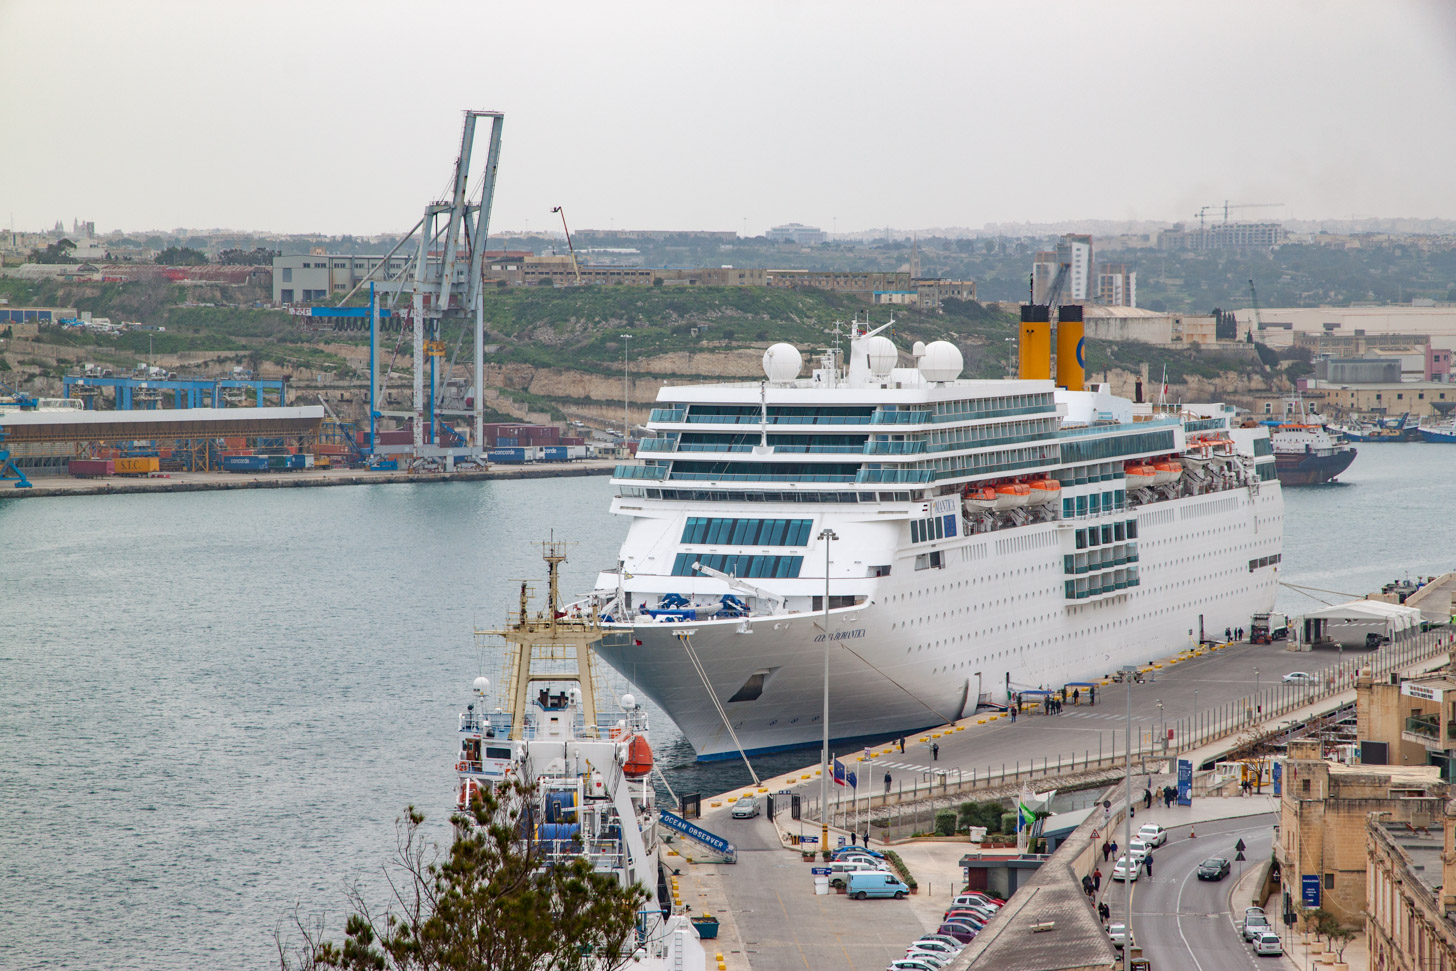 cruiseschip in Valletta